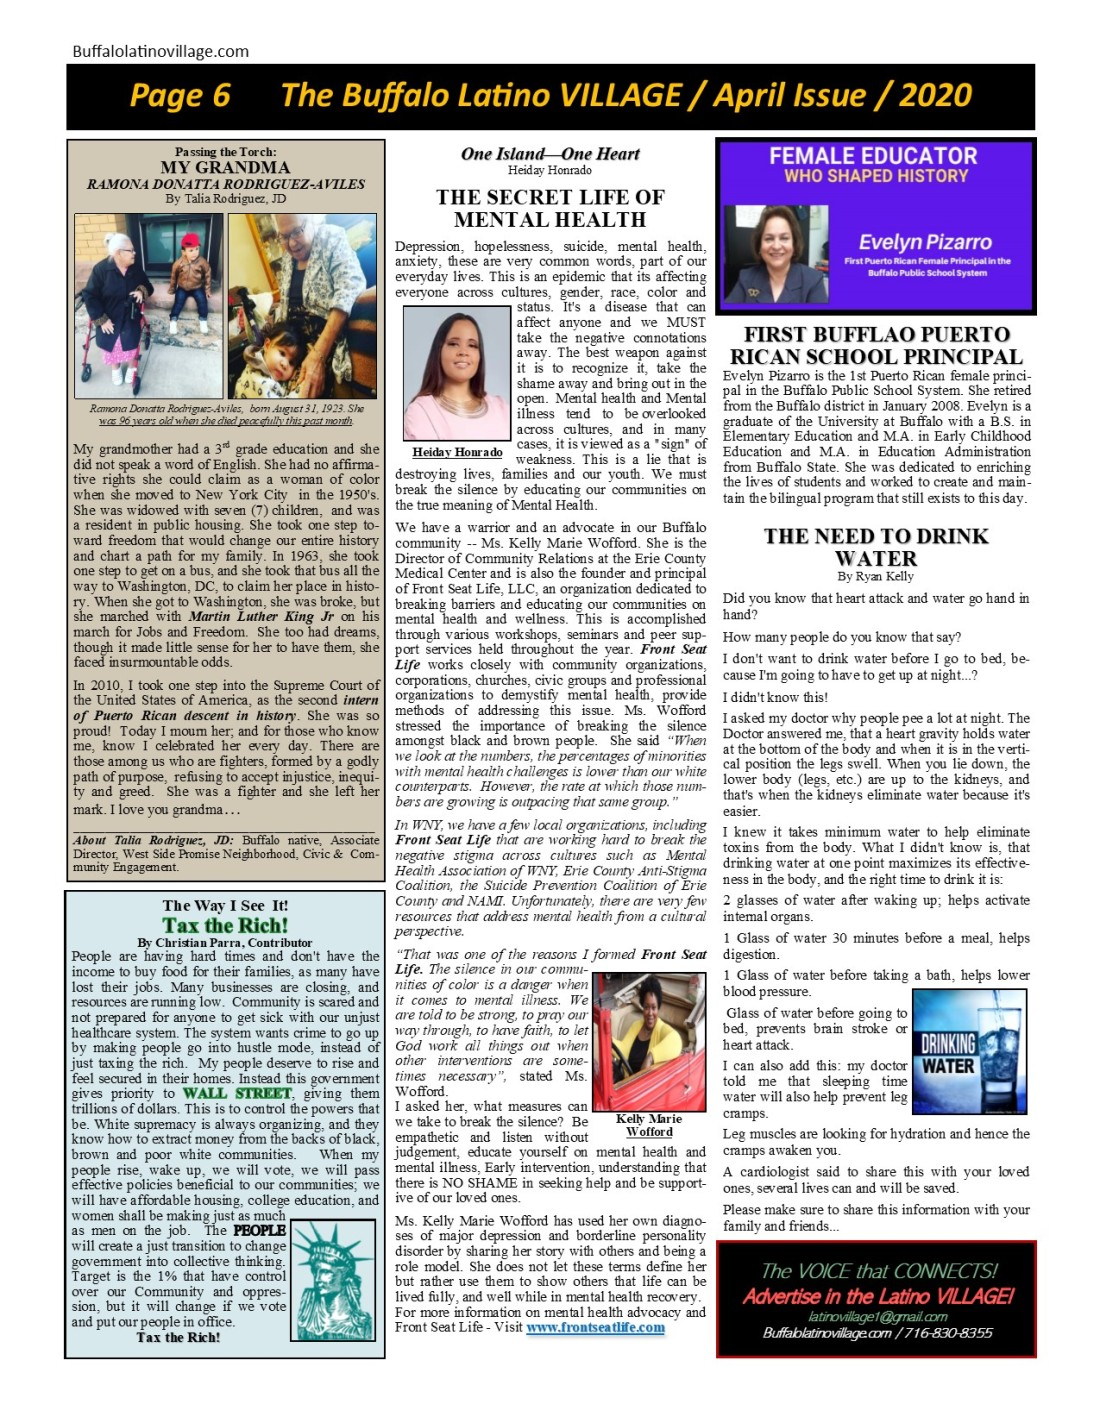 Page 6 April 2020 Issue